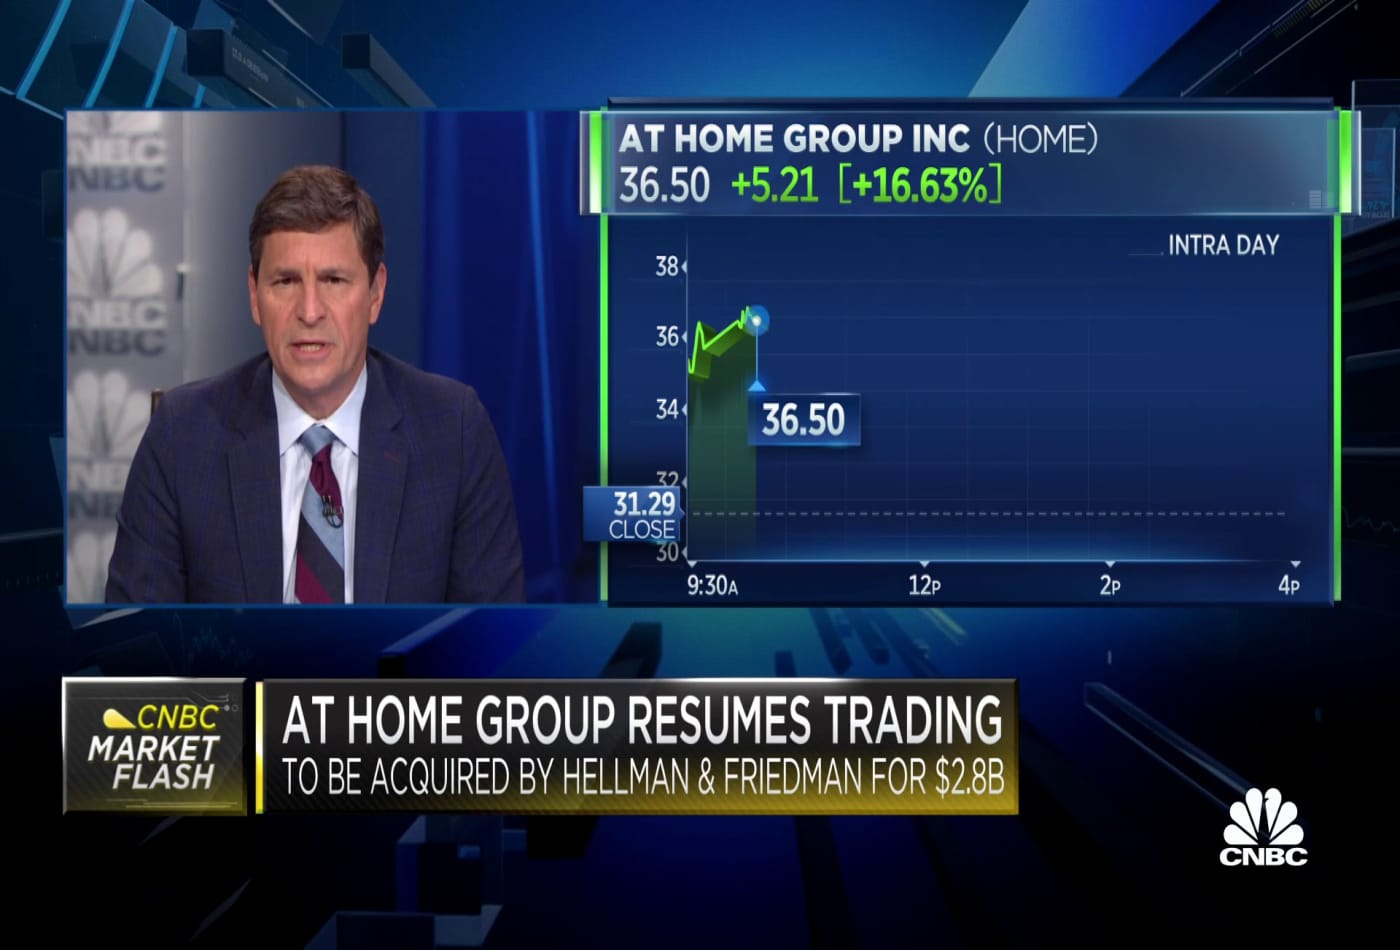 At Home Group to be acquired by Hellman & Friedman for $2.8 billion